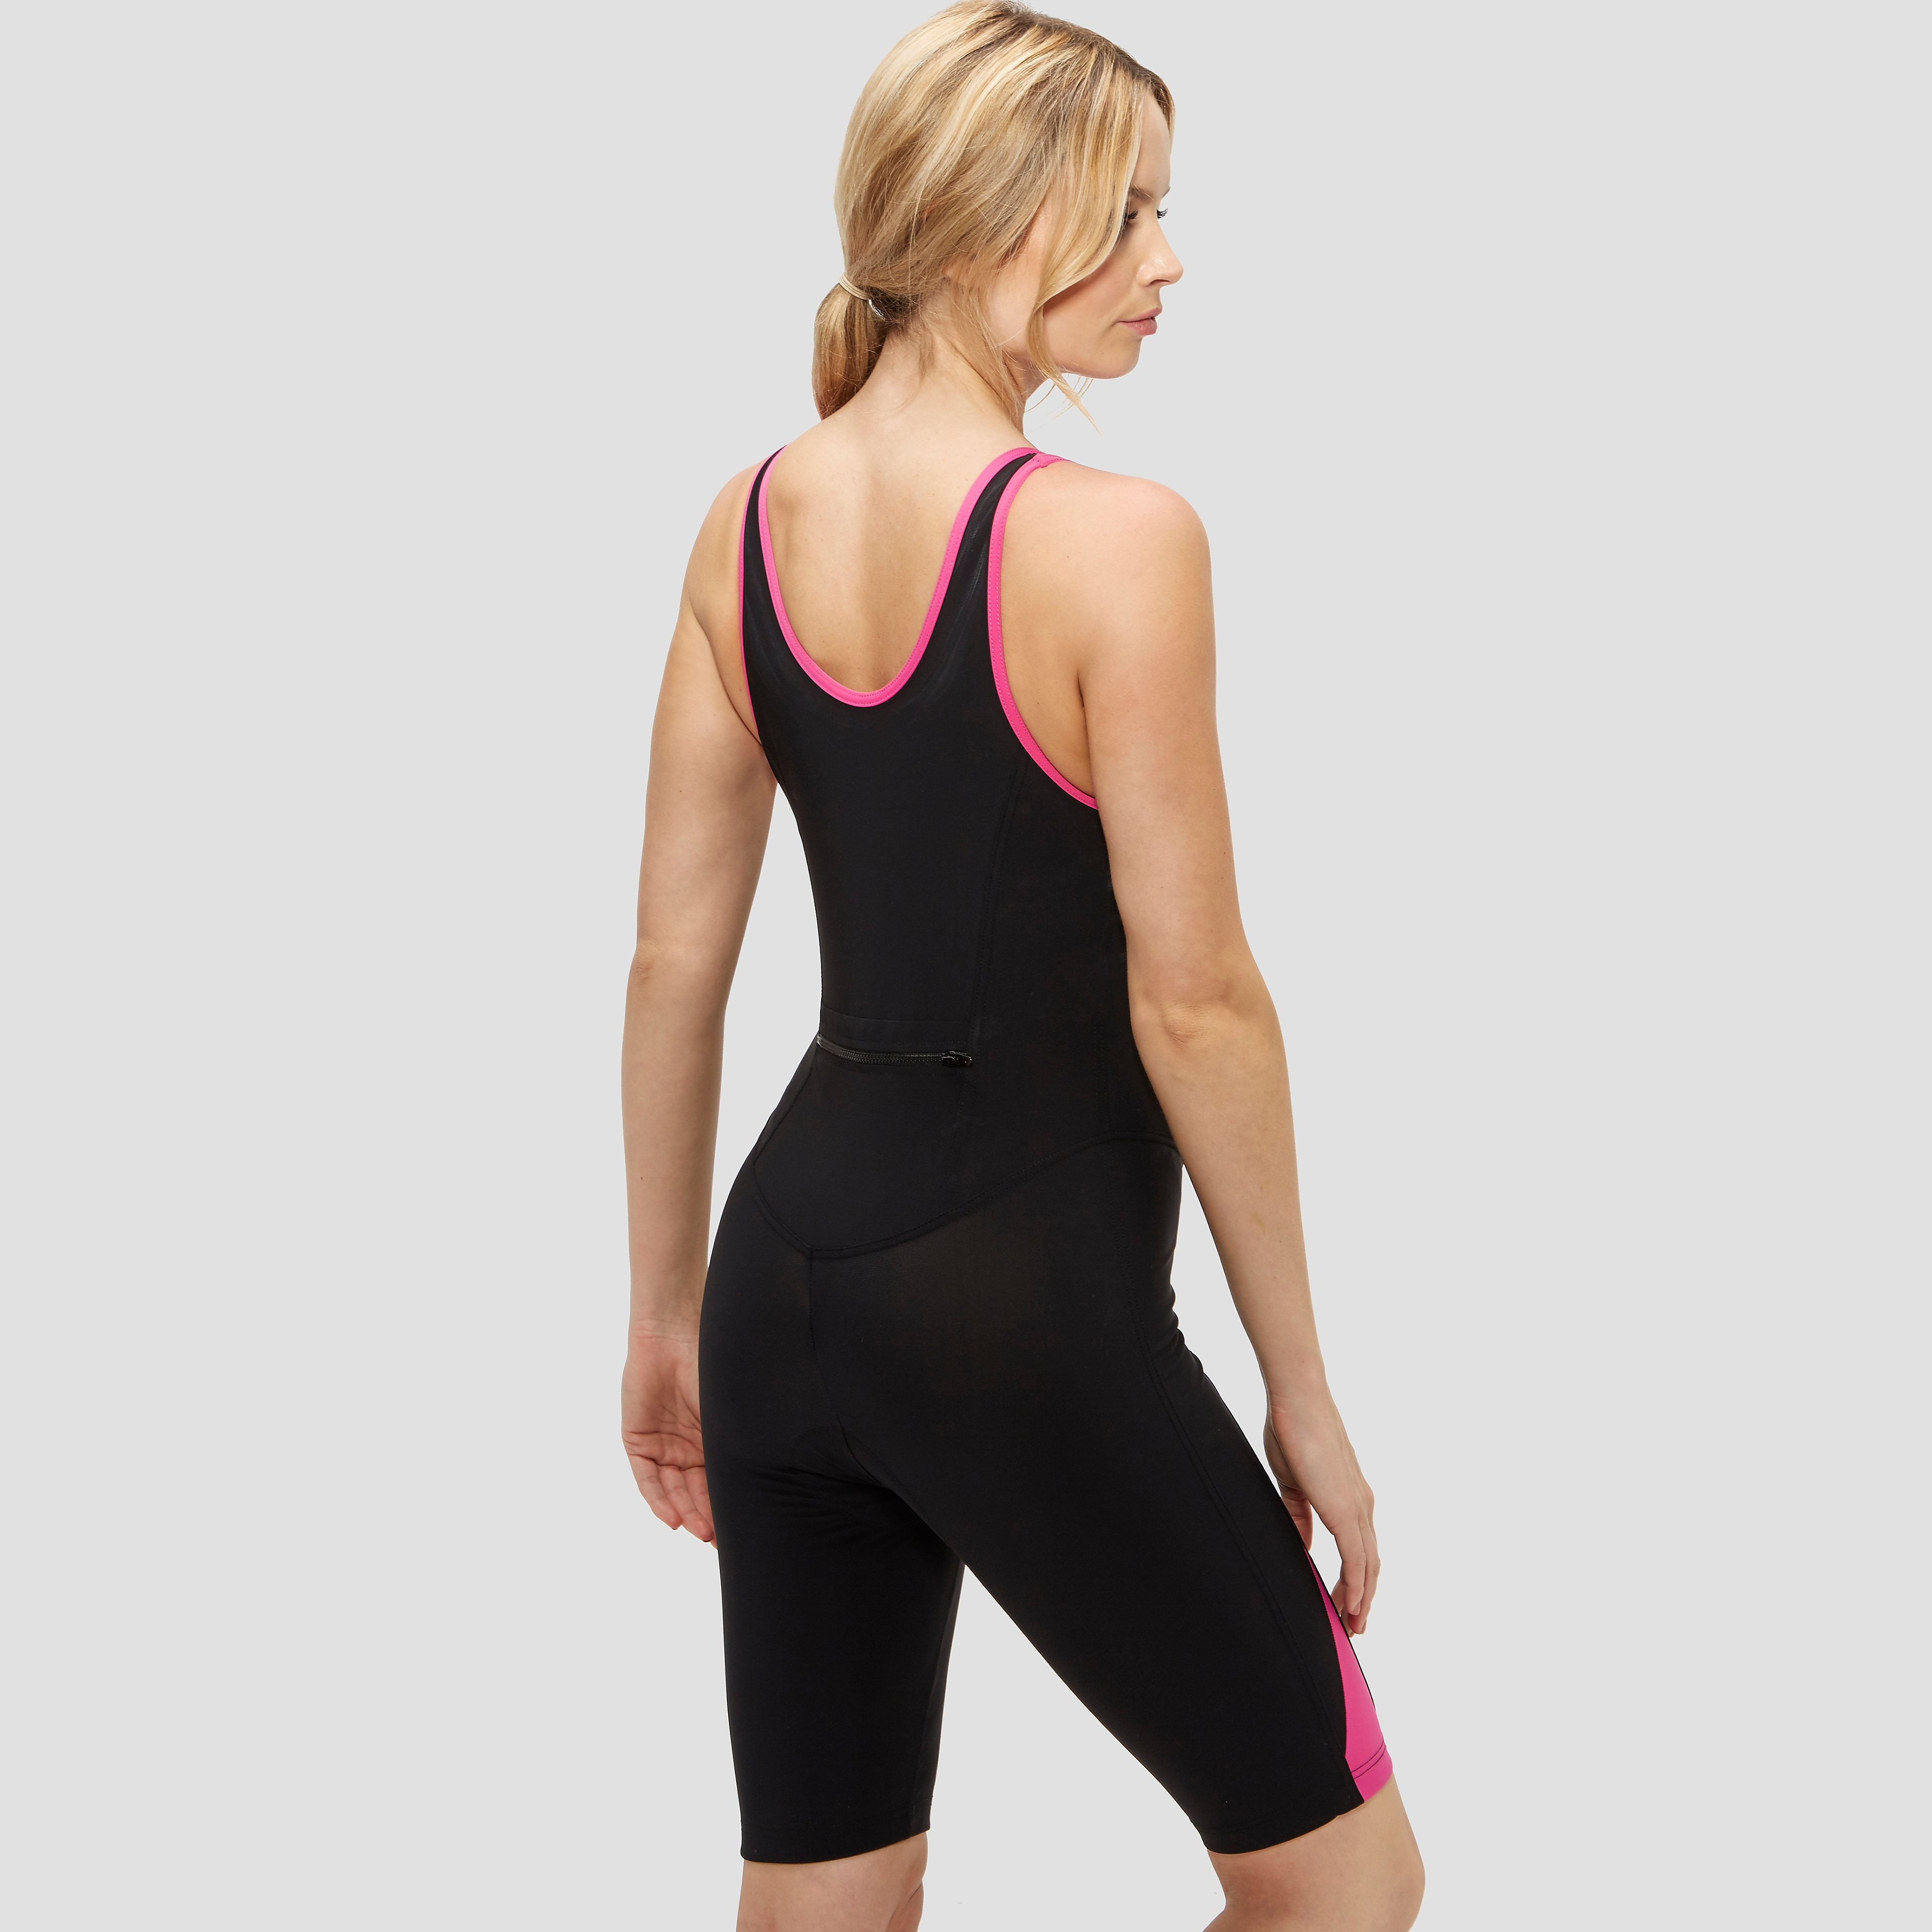 Aqua Sphere Energize Ladies Tri Suit